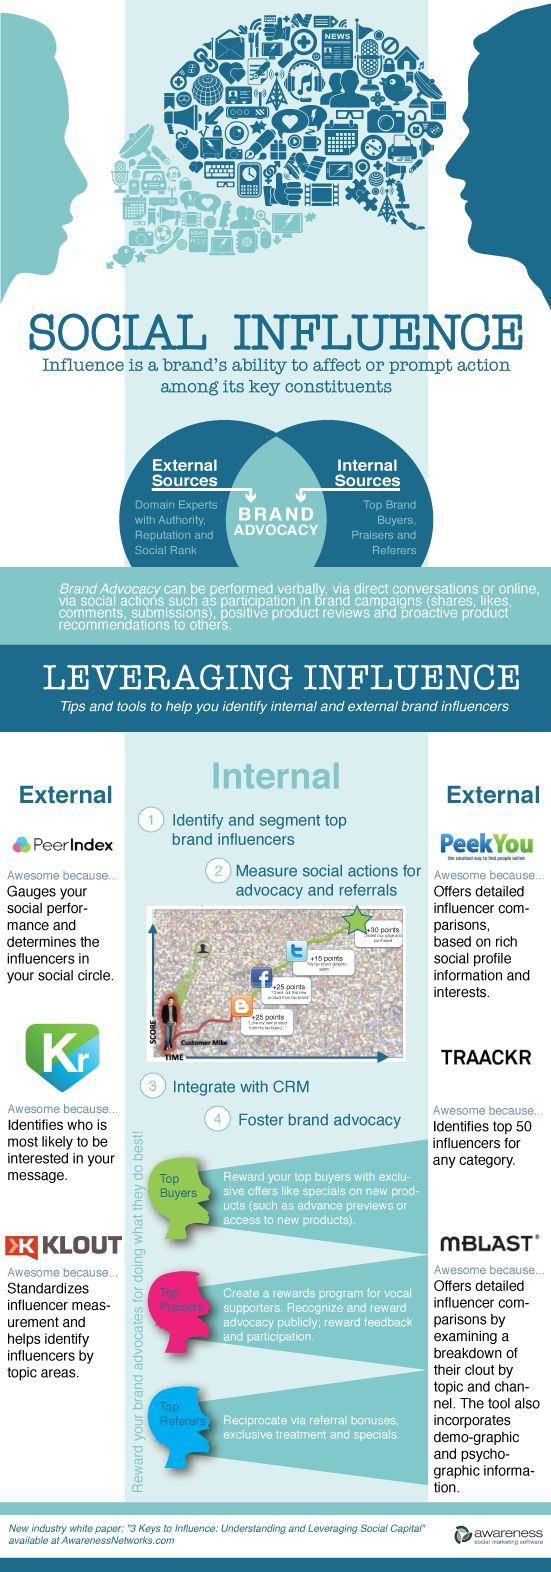 May 15: Tools to help you leverage influence (infographic)